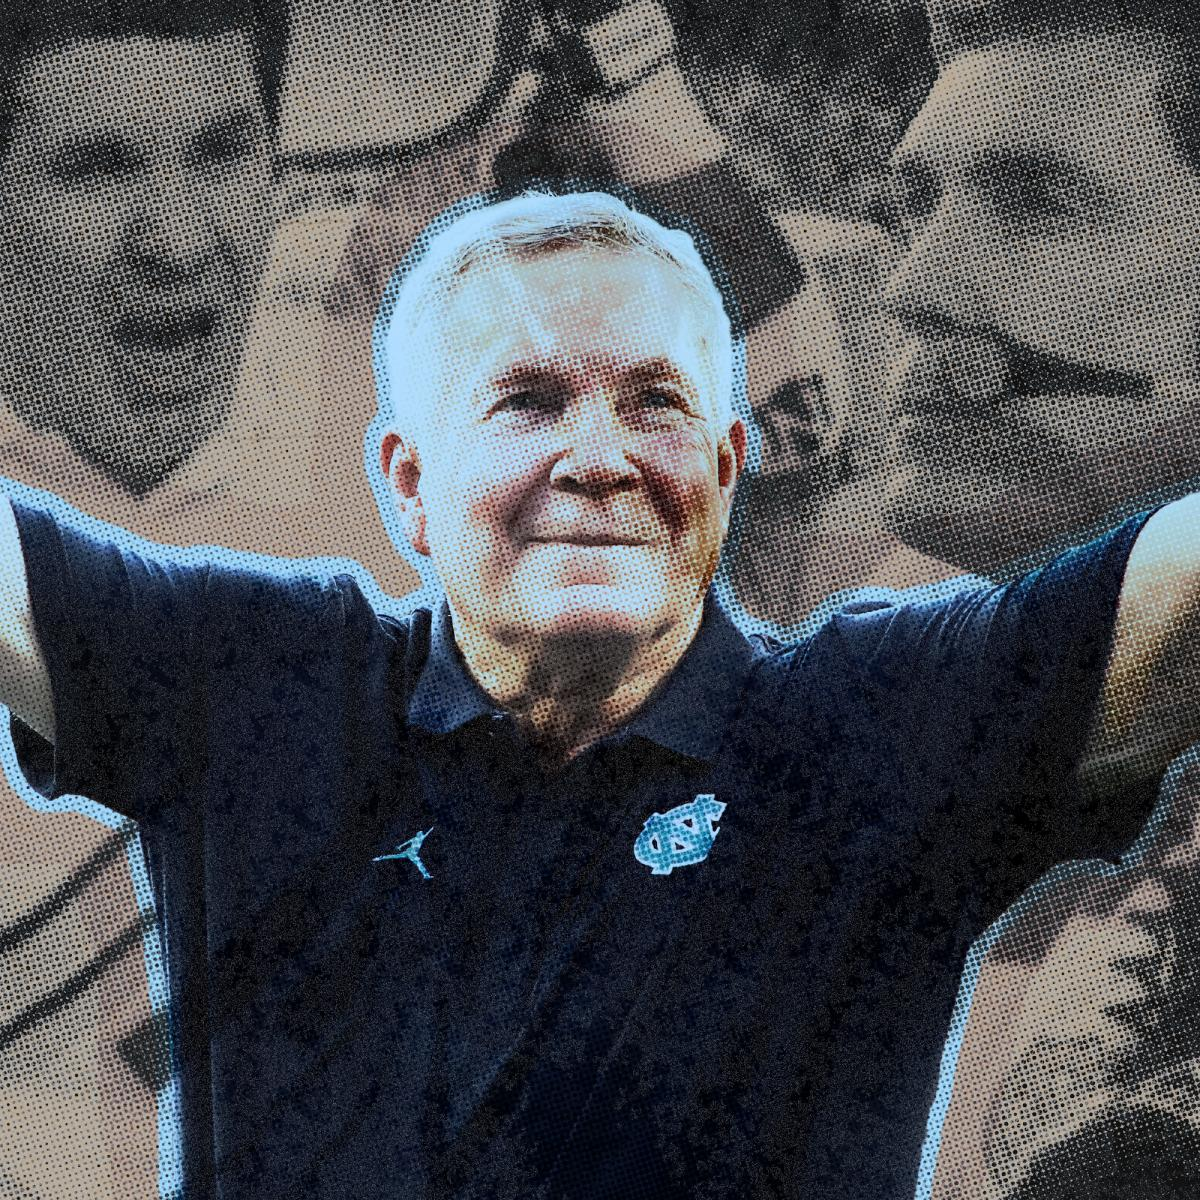 Return of the Mack: Why UNC's Head Coach Mack Brown Couldn't Stay Away